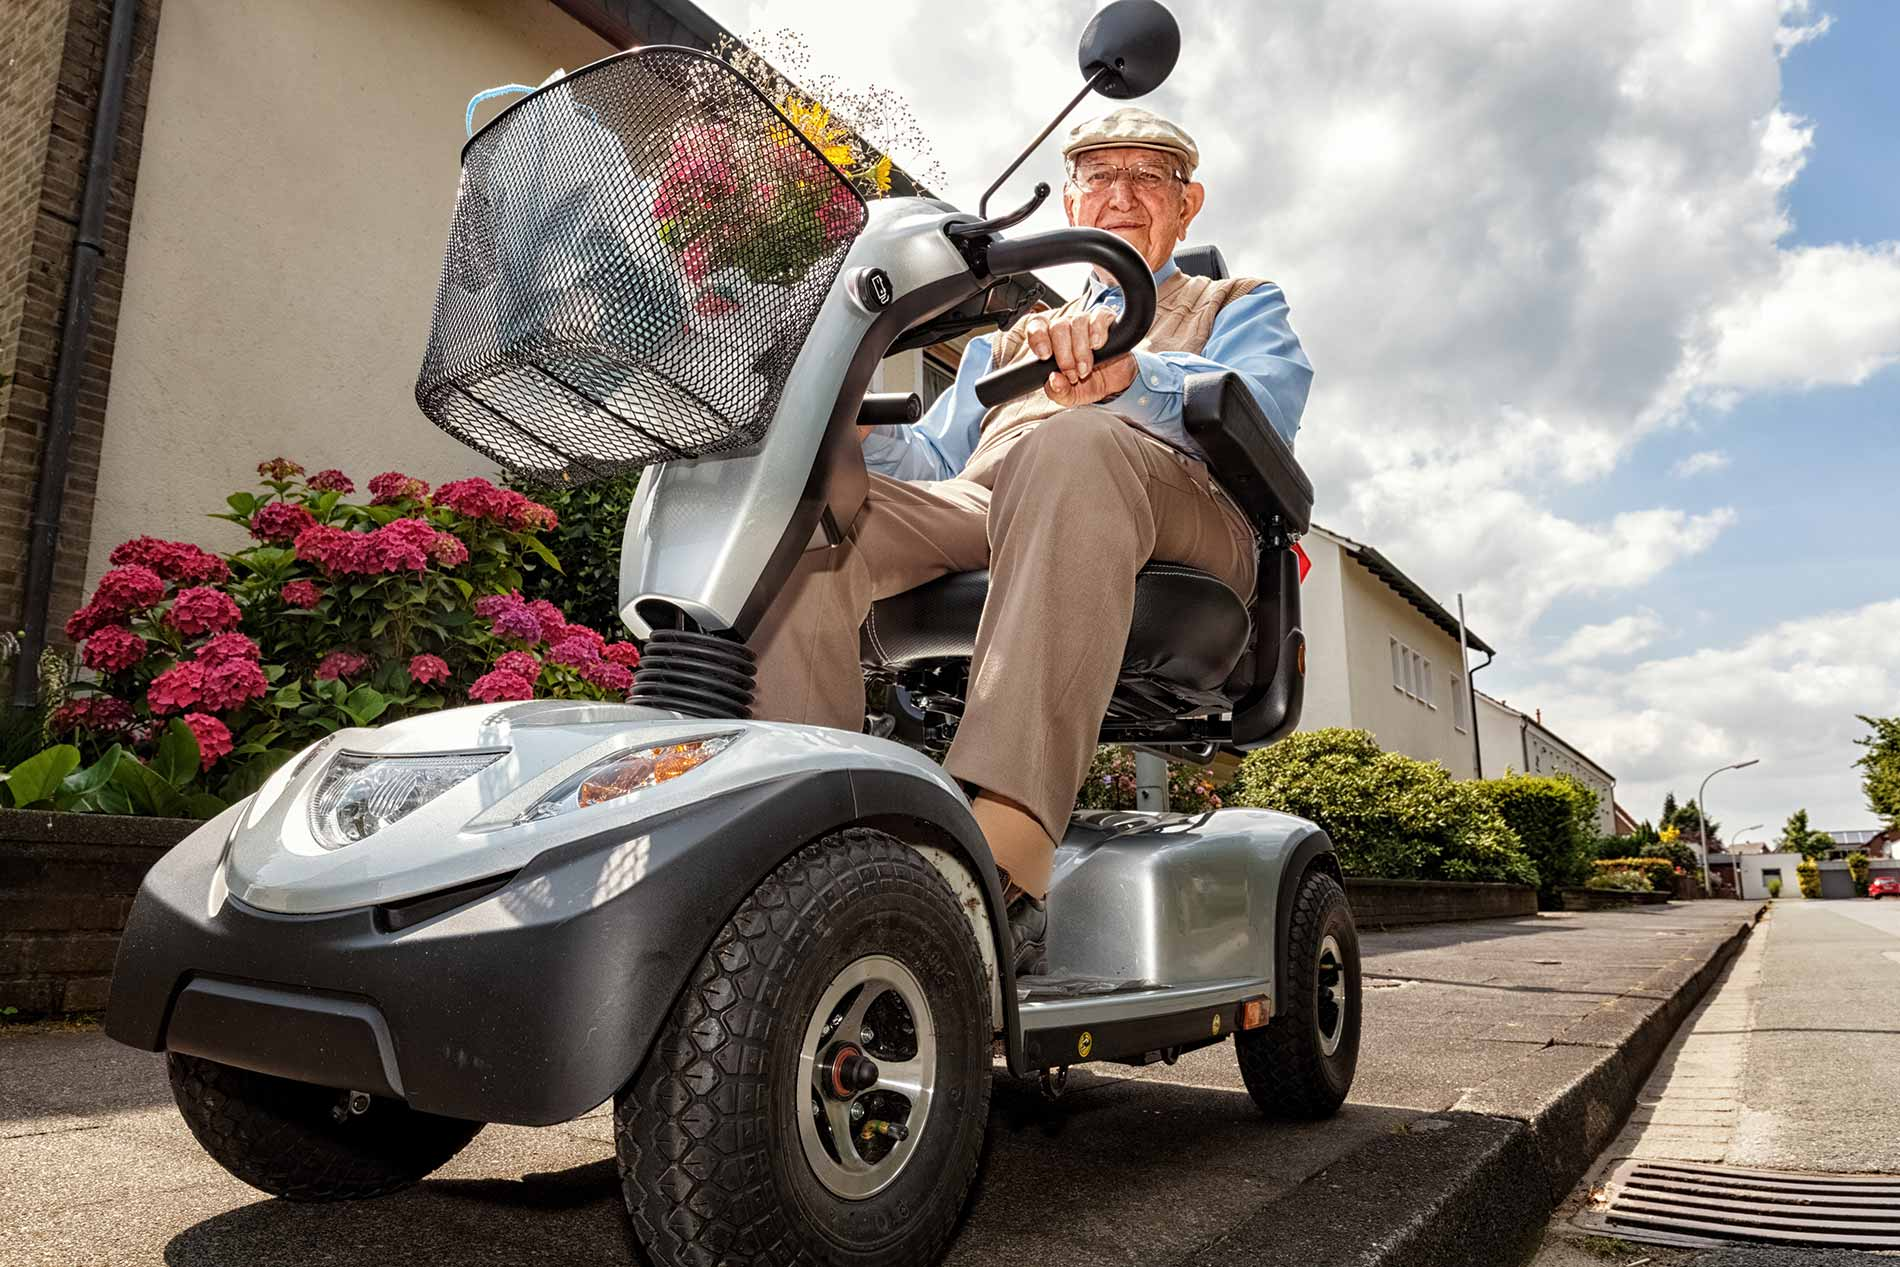 featuredimage-Mobility-Scooters---Options-for-Independent-Living